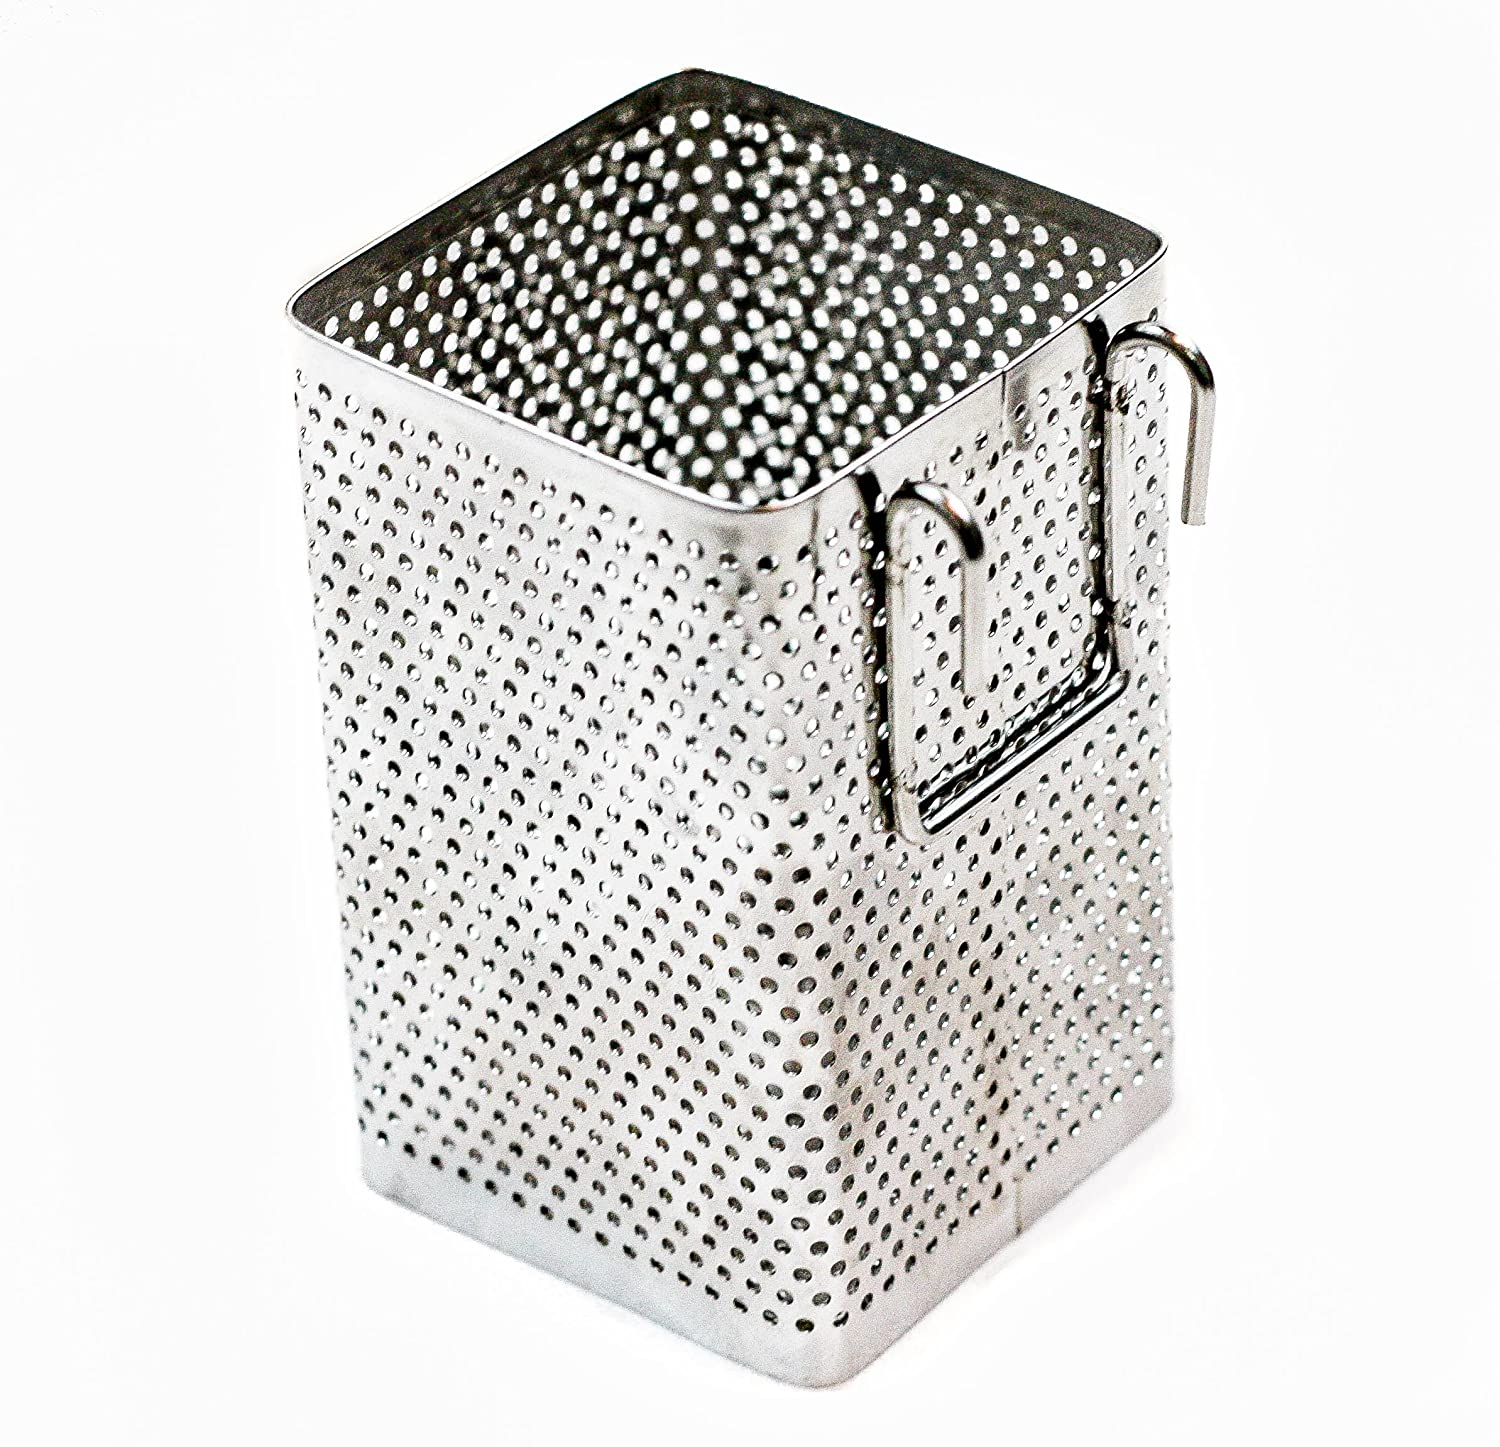 Kitchen Utensil Chopsticks Perforated Holder with Hooks - Stainless Steel - Dishwasher Safe - Small Square Caddy 2.5 X 3.9 X 2.5 JK Industries SYNCHKG120733